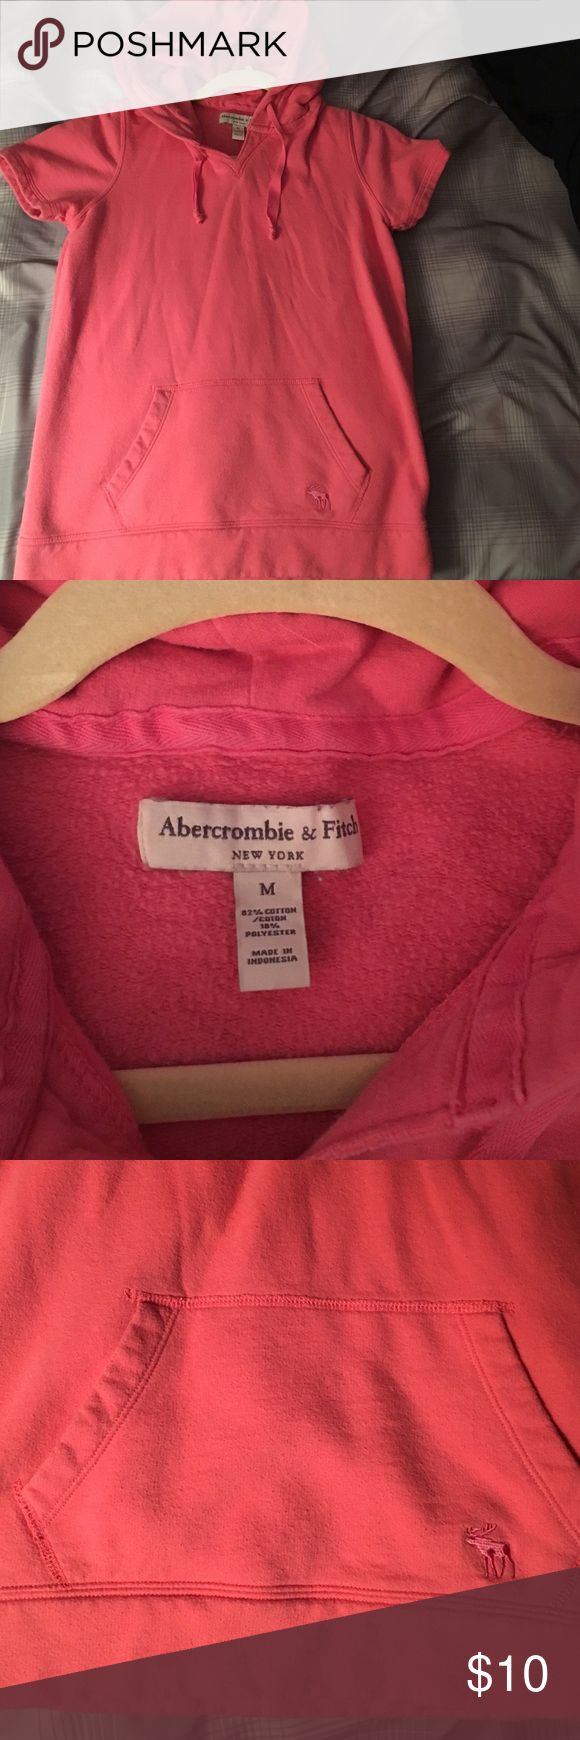 Abercrombie & Fitch short sleeve hoodie Abercrombie & Fitch short sleeve hoodie with pocket in the front. Worn more than a few times but would be cute for a workout. Size medium. Abercrombie & Fitch Tops Sweatshirts & Hoodies